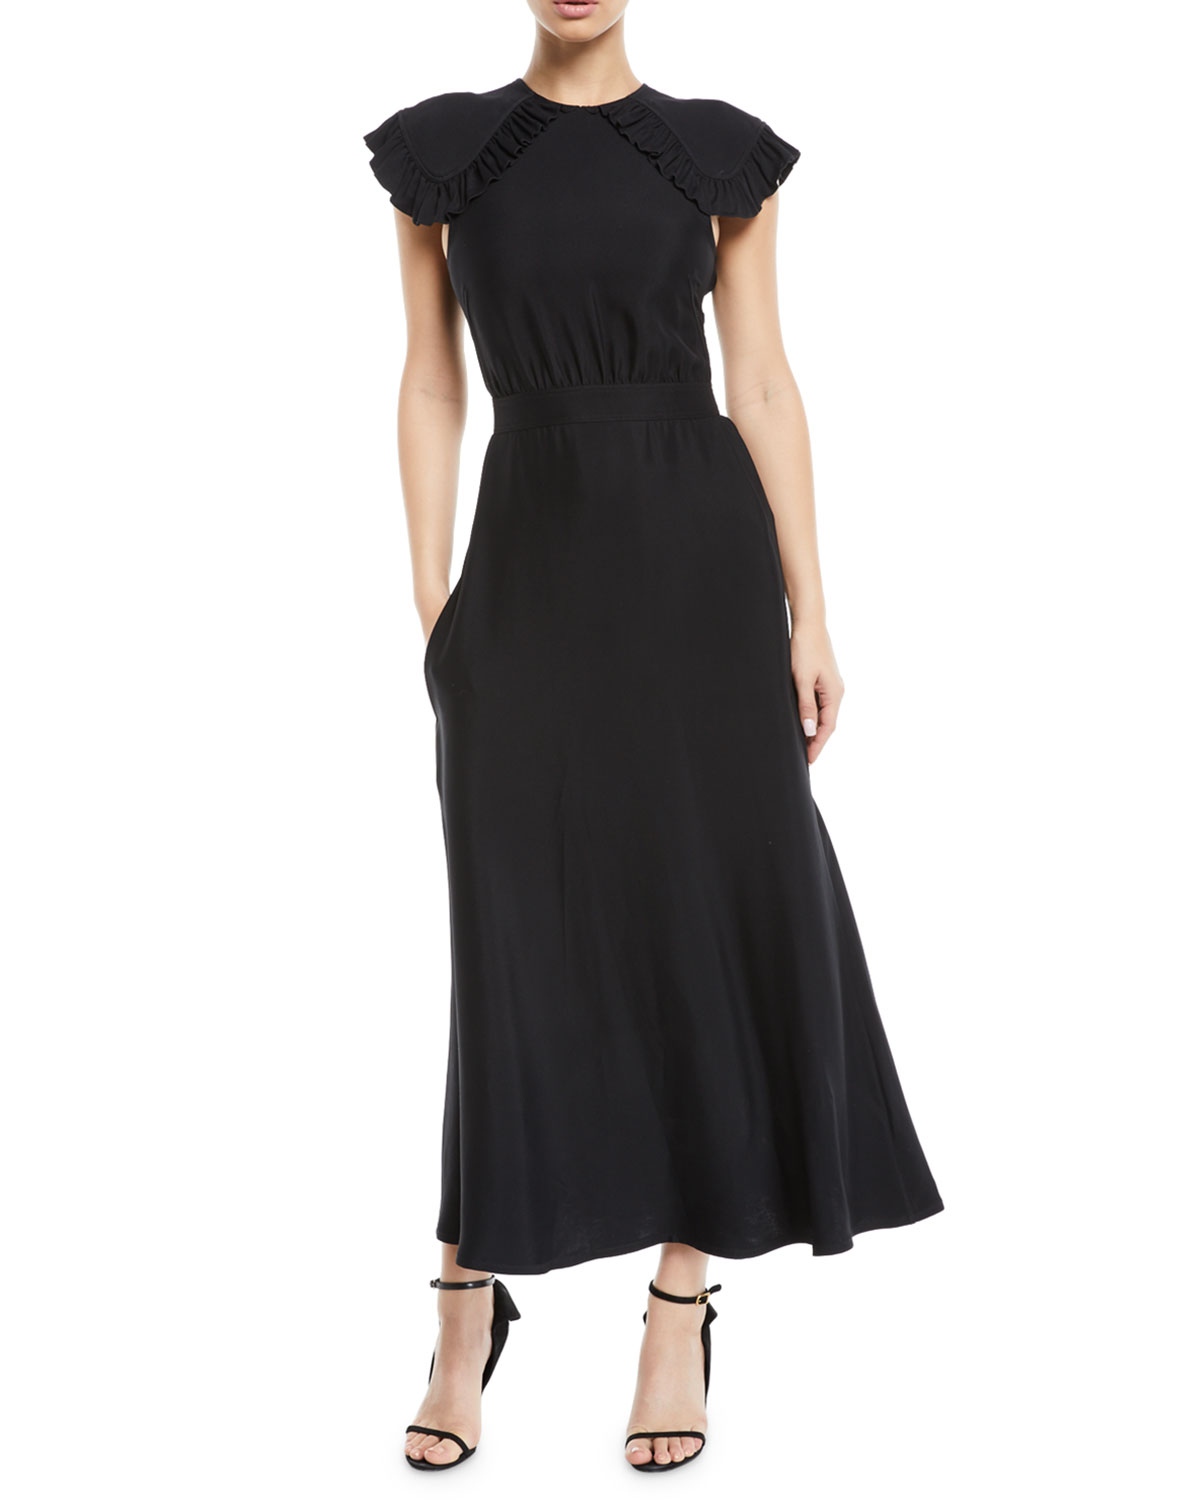 CALVIN KLEIN 205W39NYC Ruffled Cap-Sleeve Fitted-Waist A-Line Midi Dress